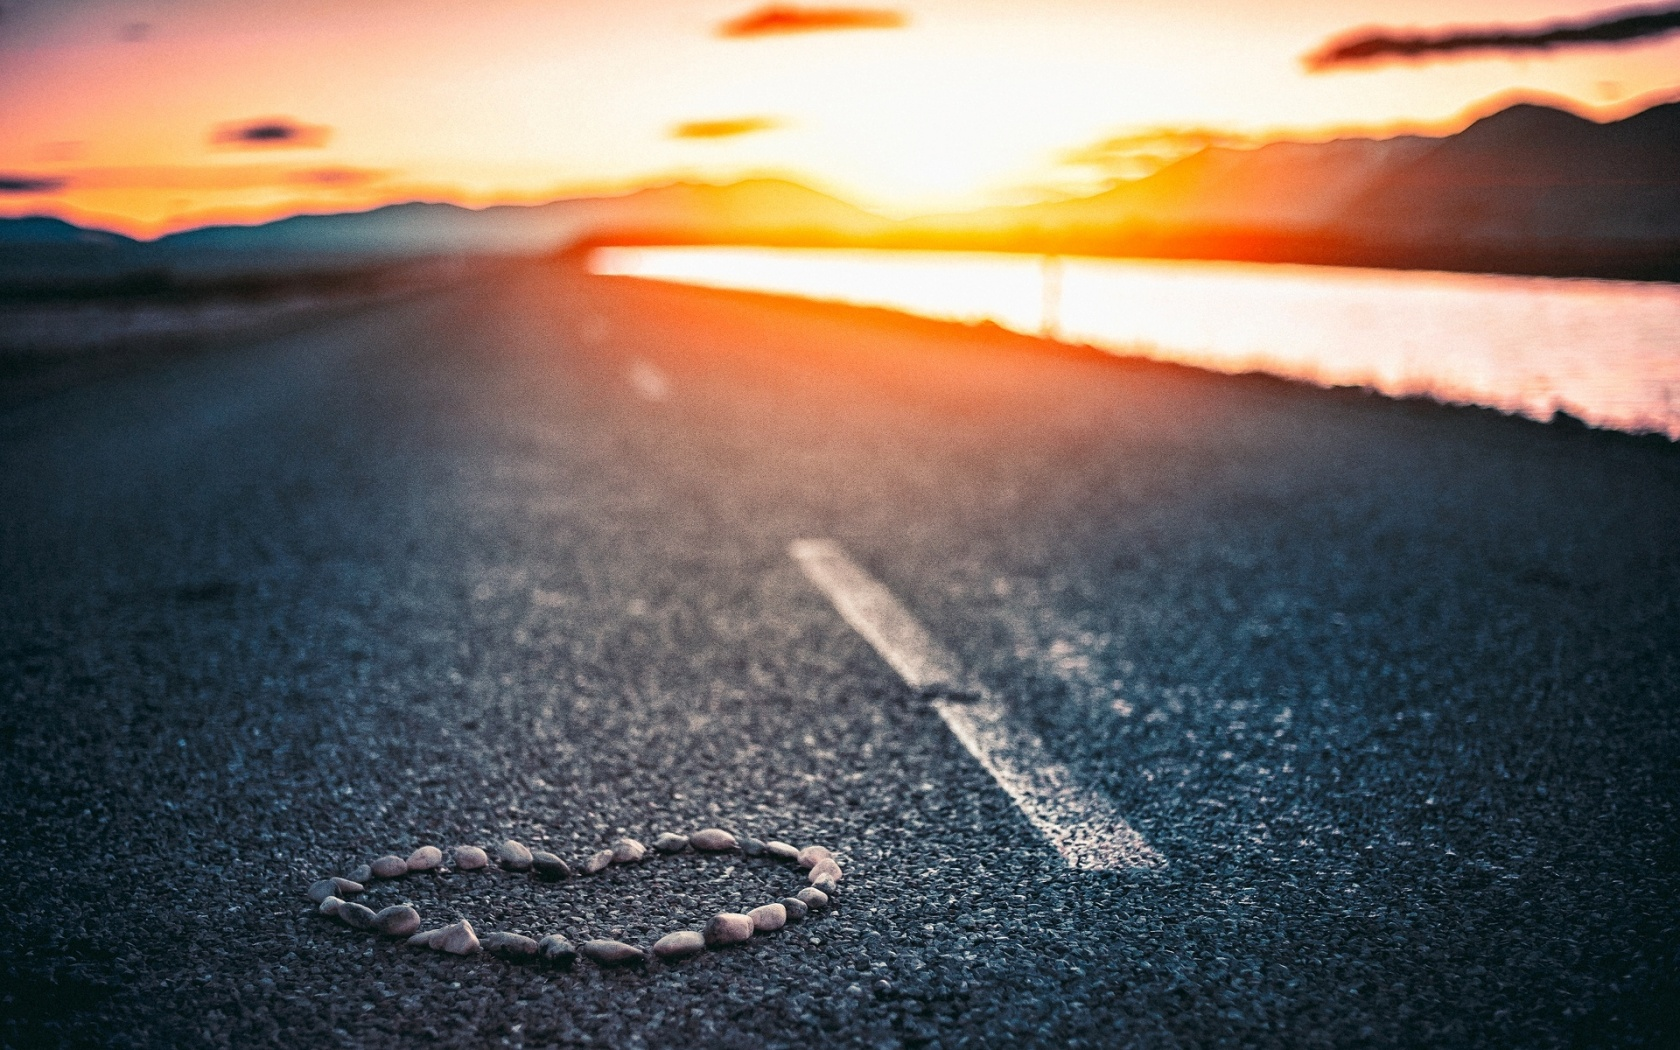 Heart on Road